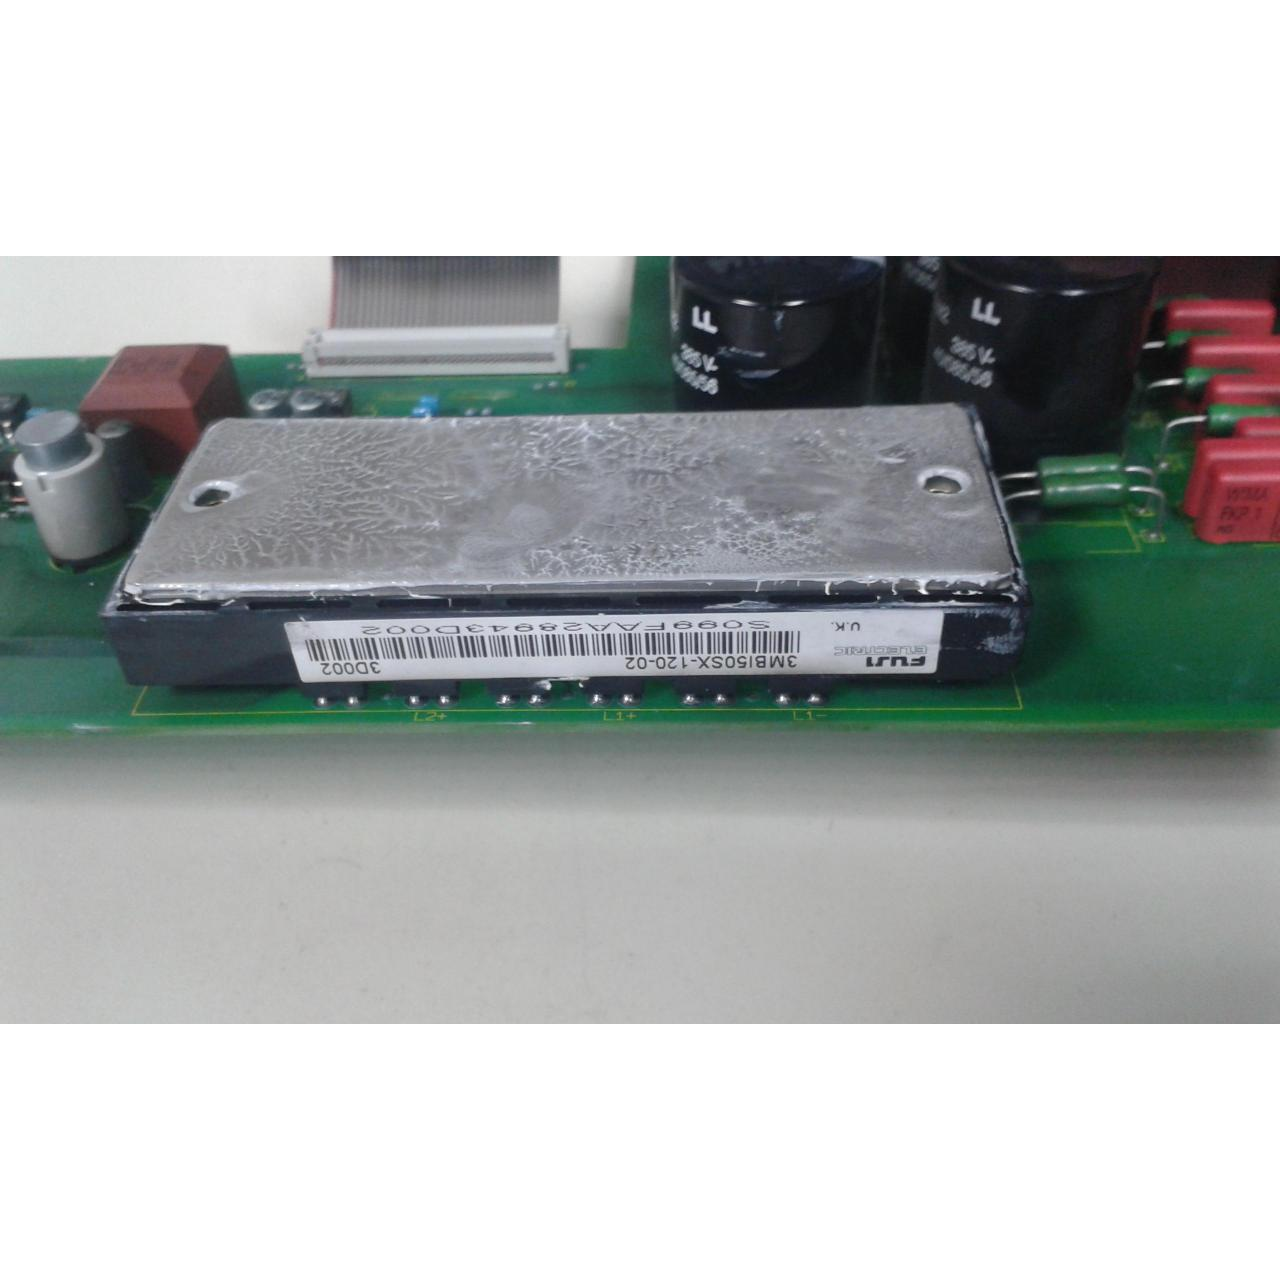 Buy cheap INTERGRATED CIRCUIT 3MB150SX-120-02 from wholesalers